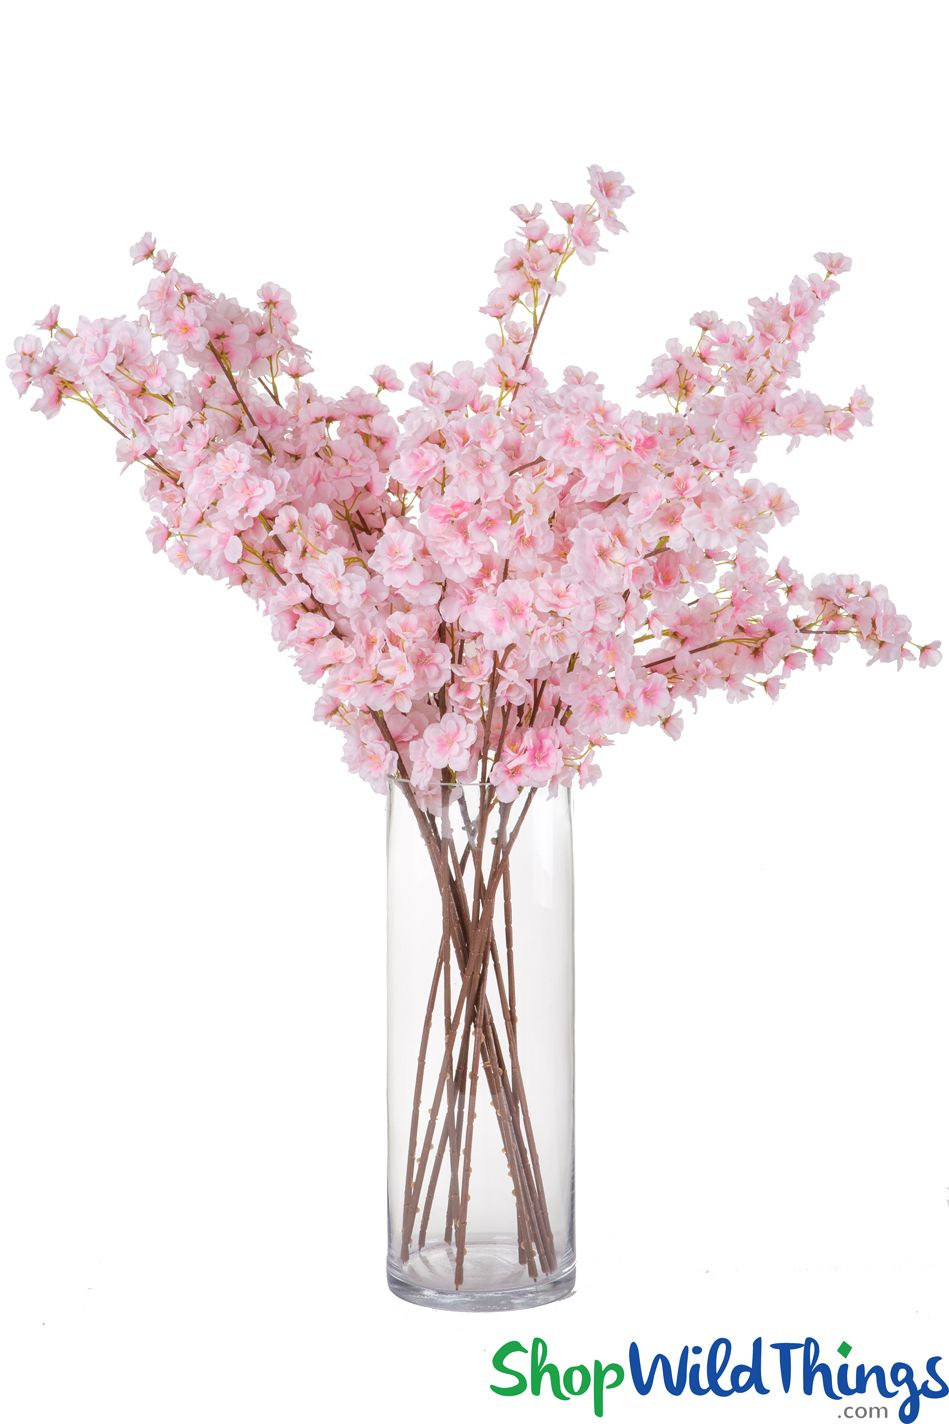 Artificial Flowering Cherry Branch 34 Tall Silk Pink Blossoms With Bendabl Cherry Blossom Wedding Inspiration Cherry Blossom Branch Floral Wedding Inspiration